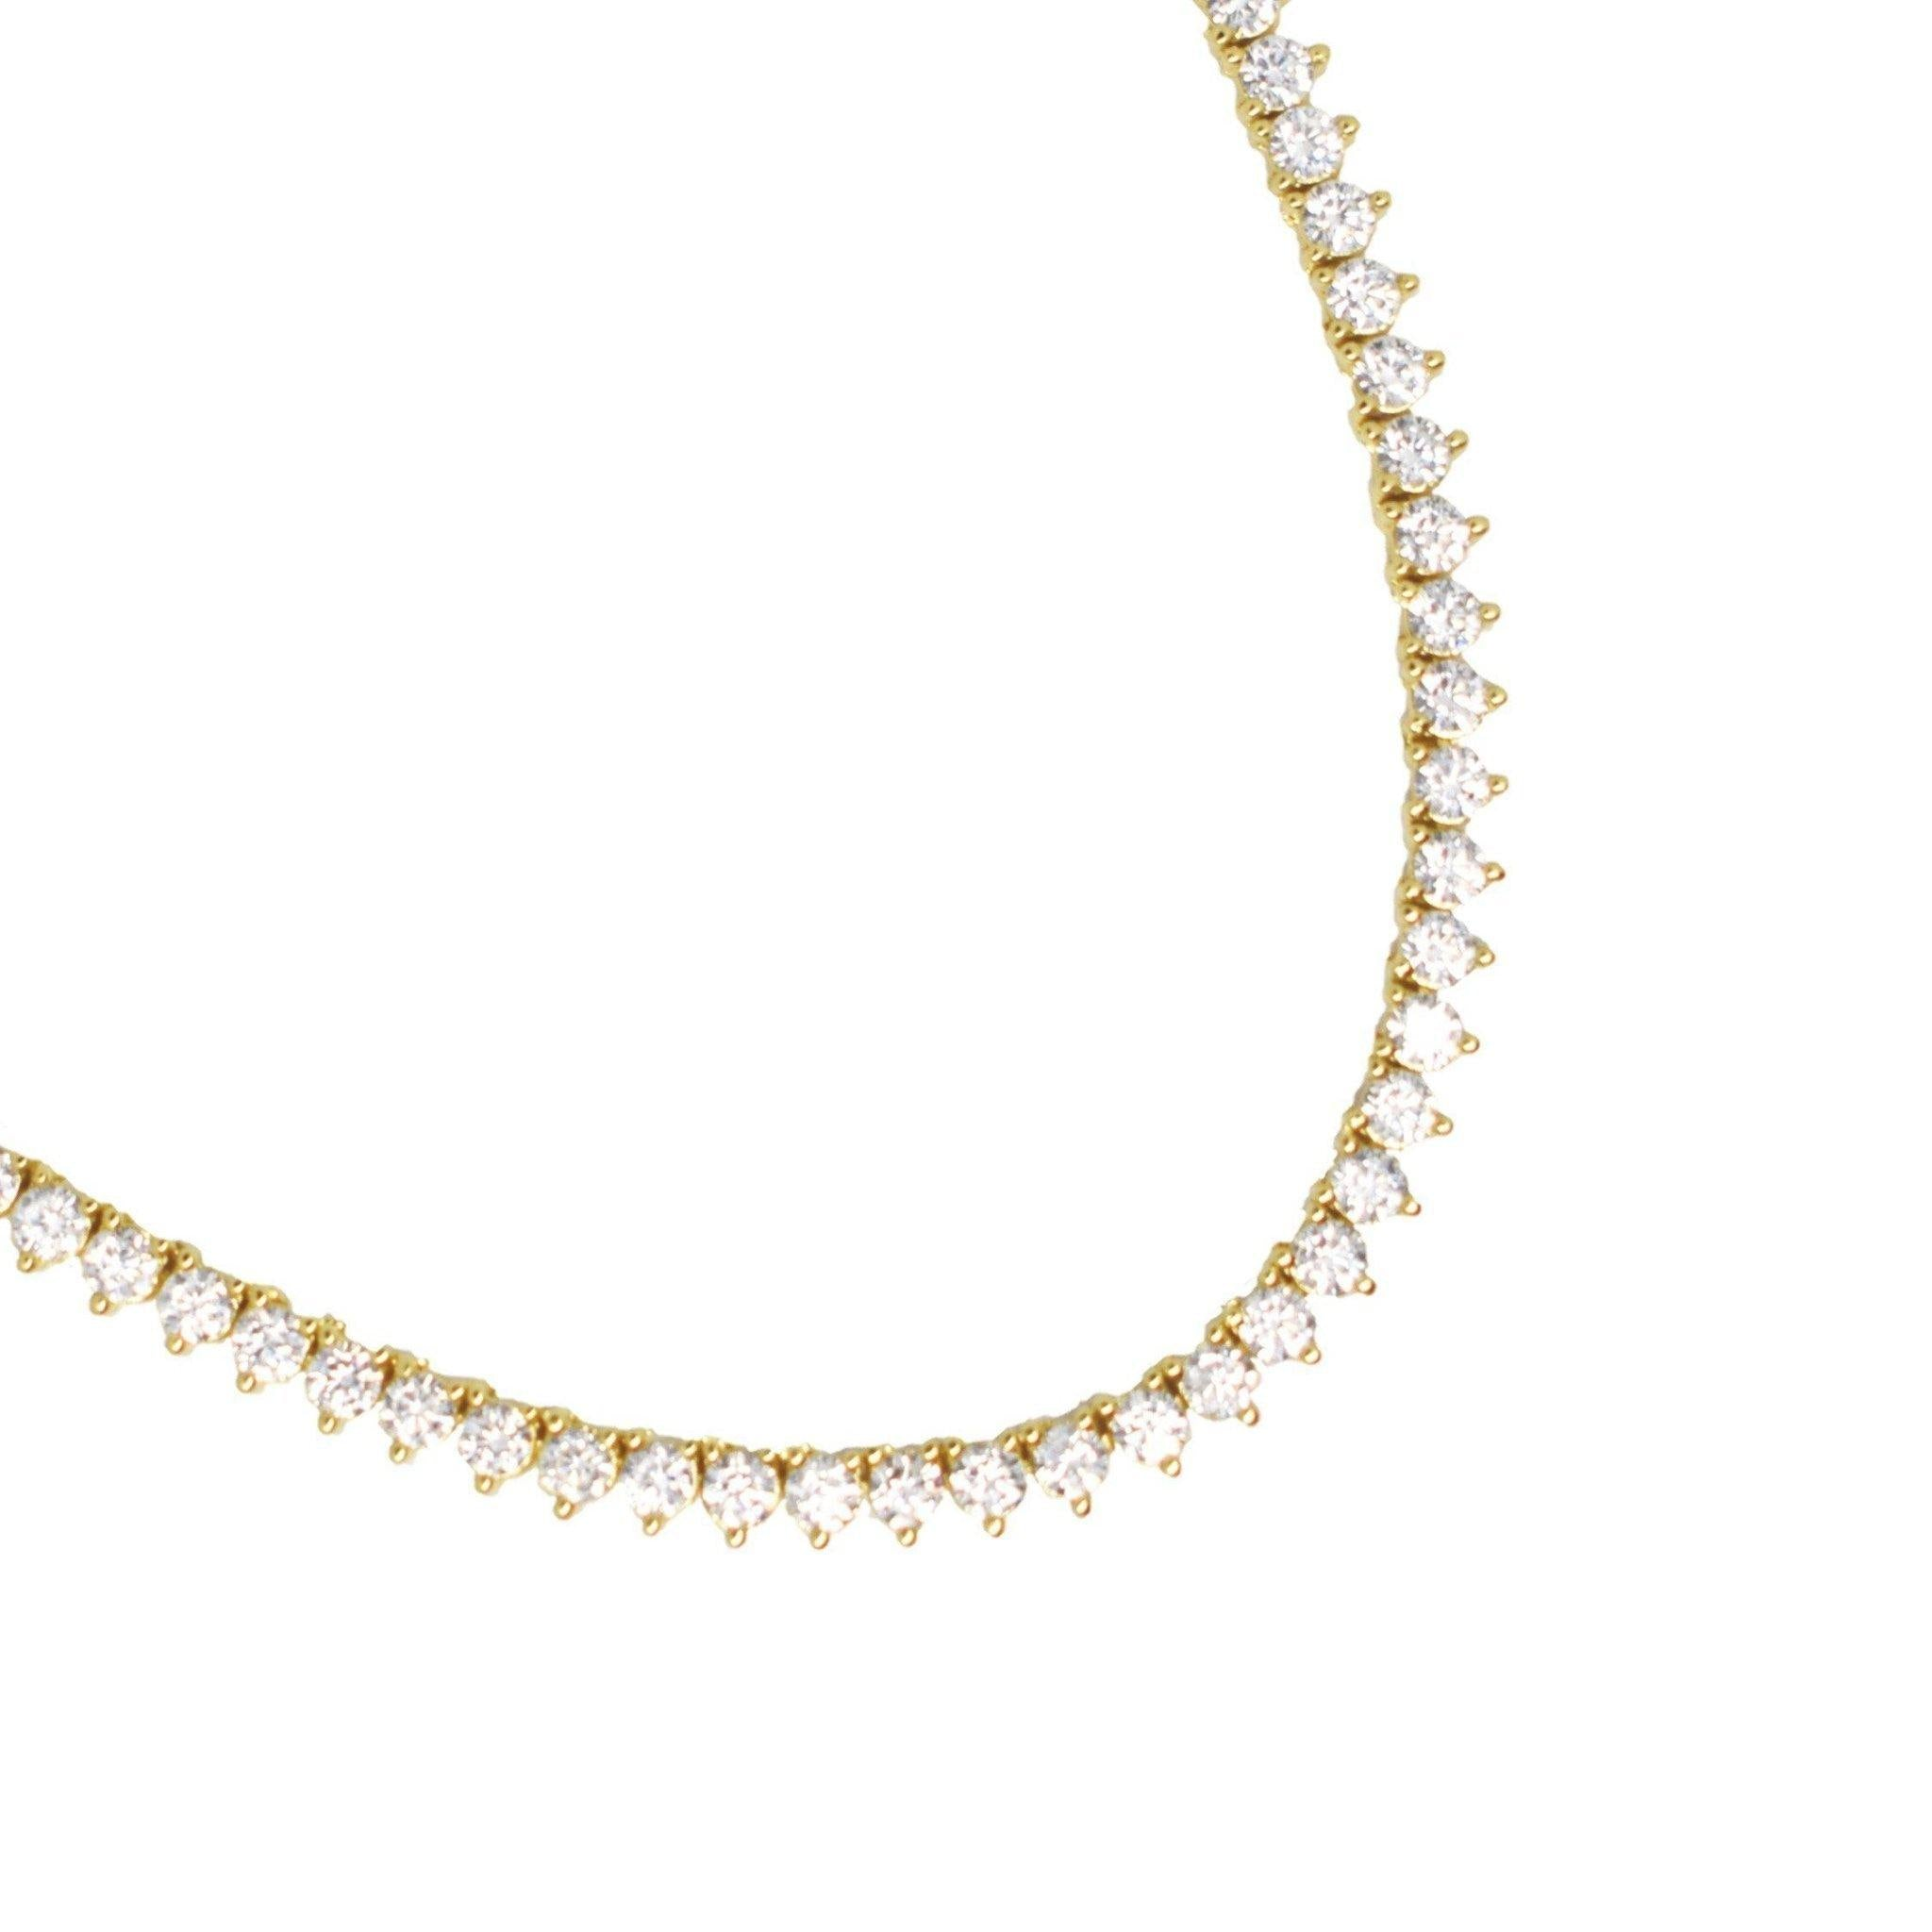 Kensie Diamond Collar - Taylor Adorn